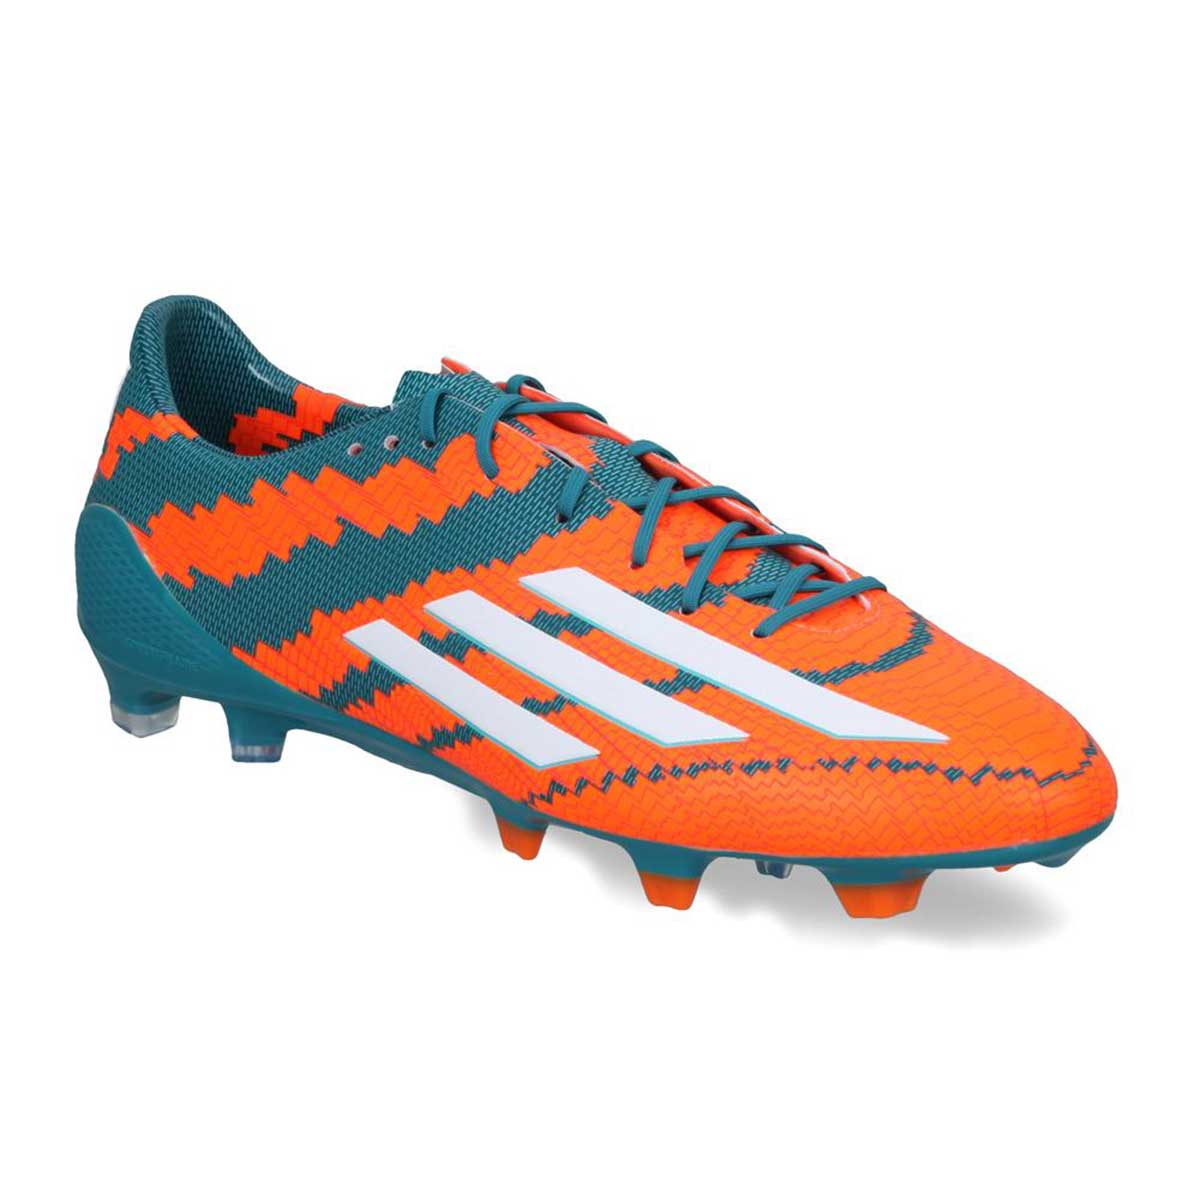 Buy Adidas Messi 10.1 FG Football Shoes Online in India 6a3151aa449dd